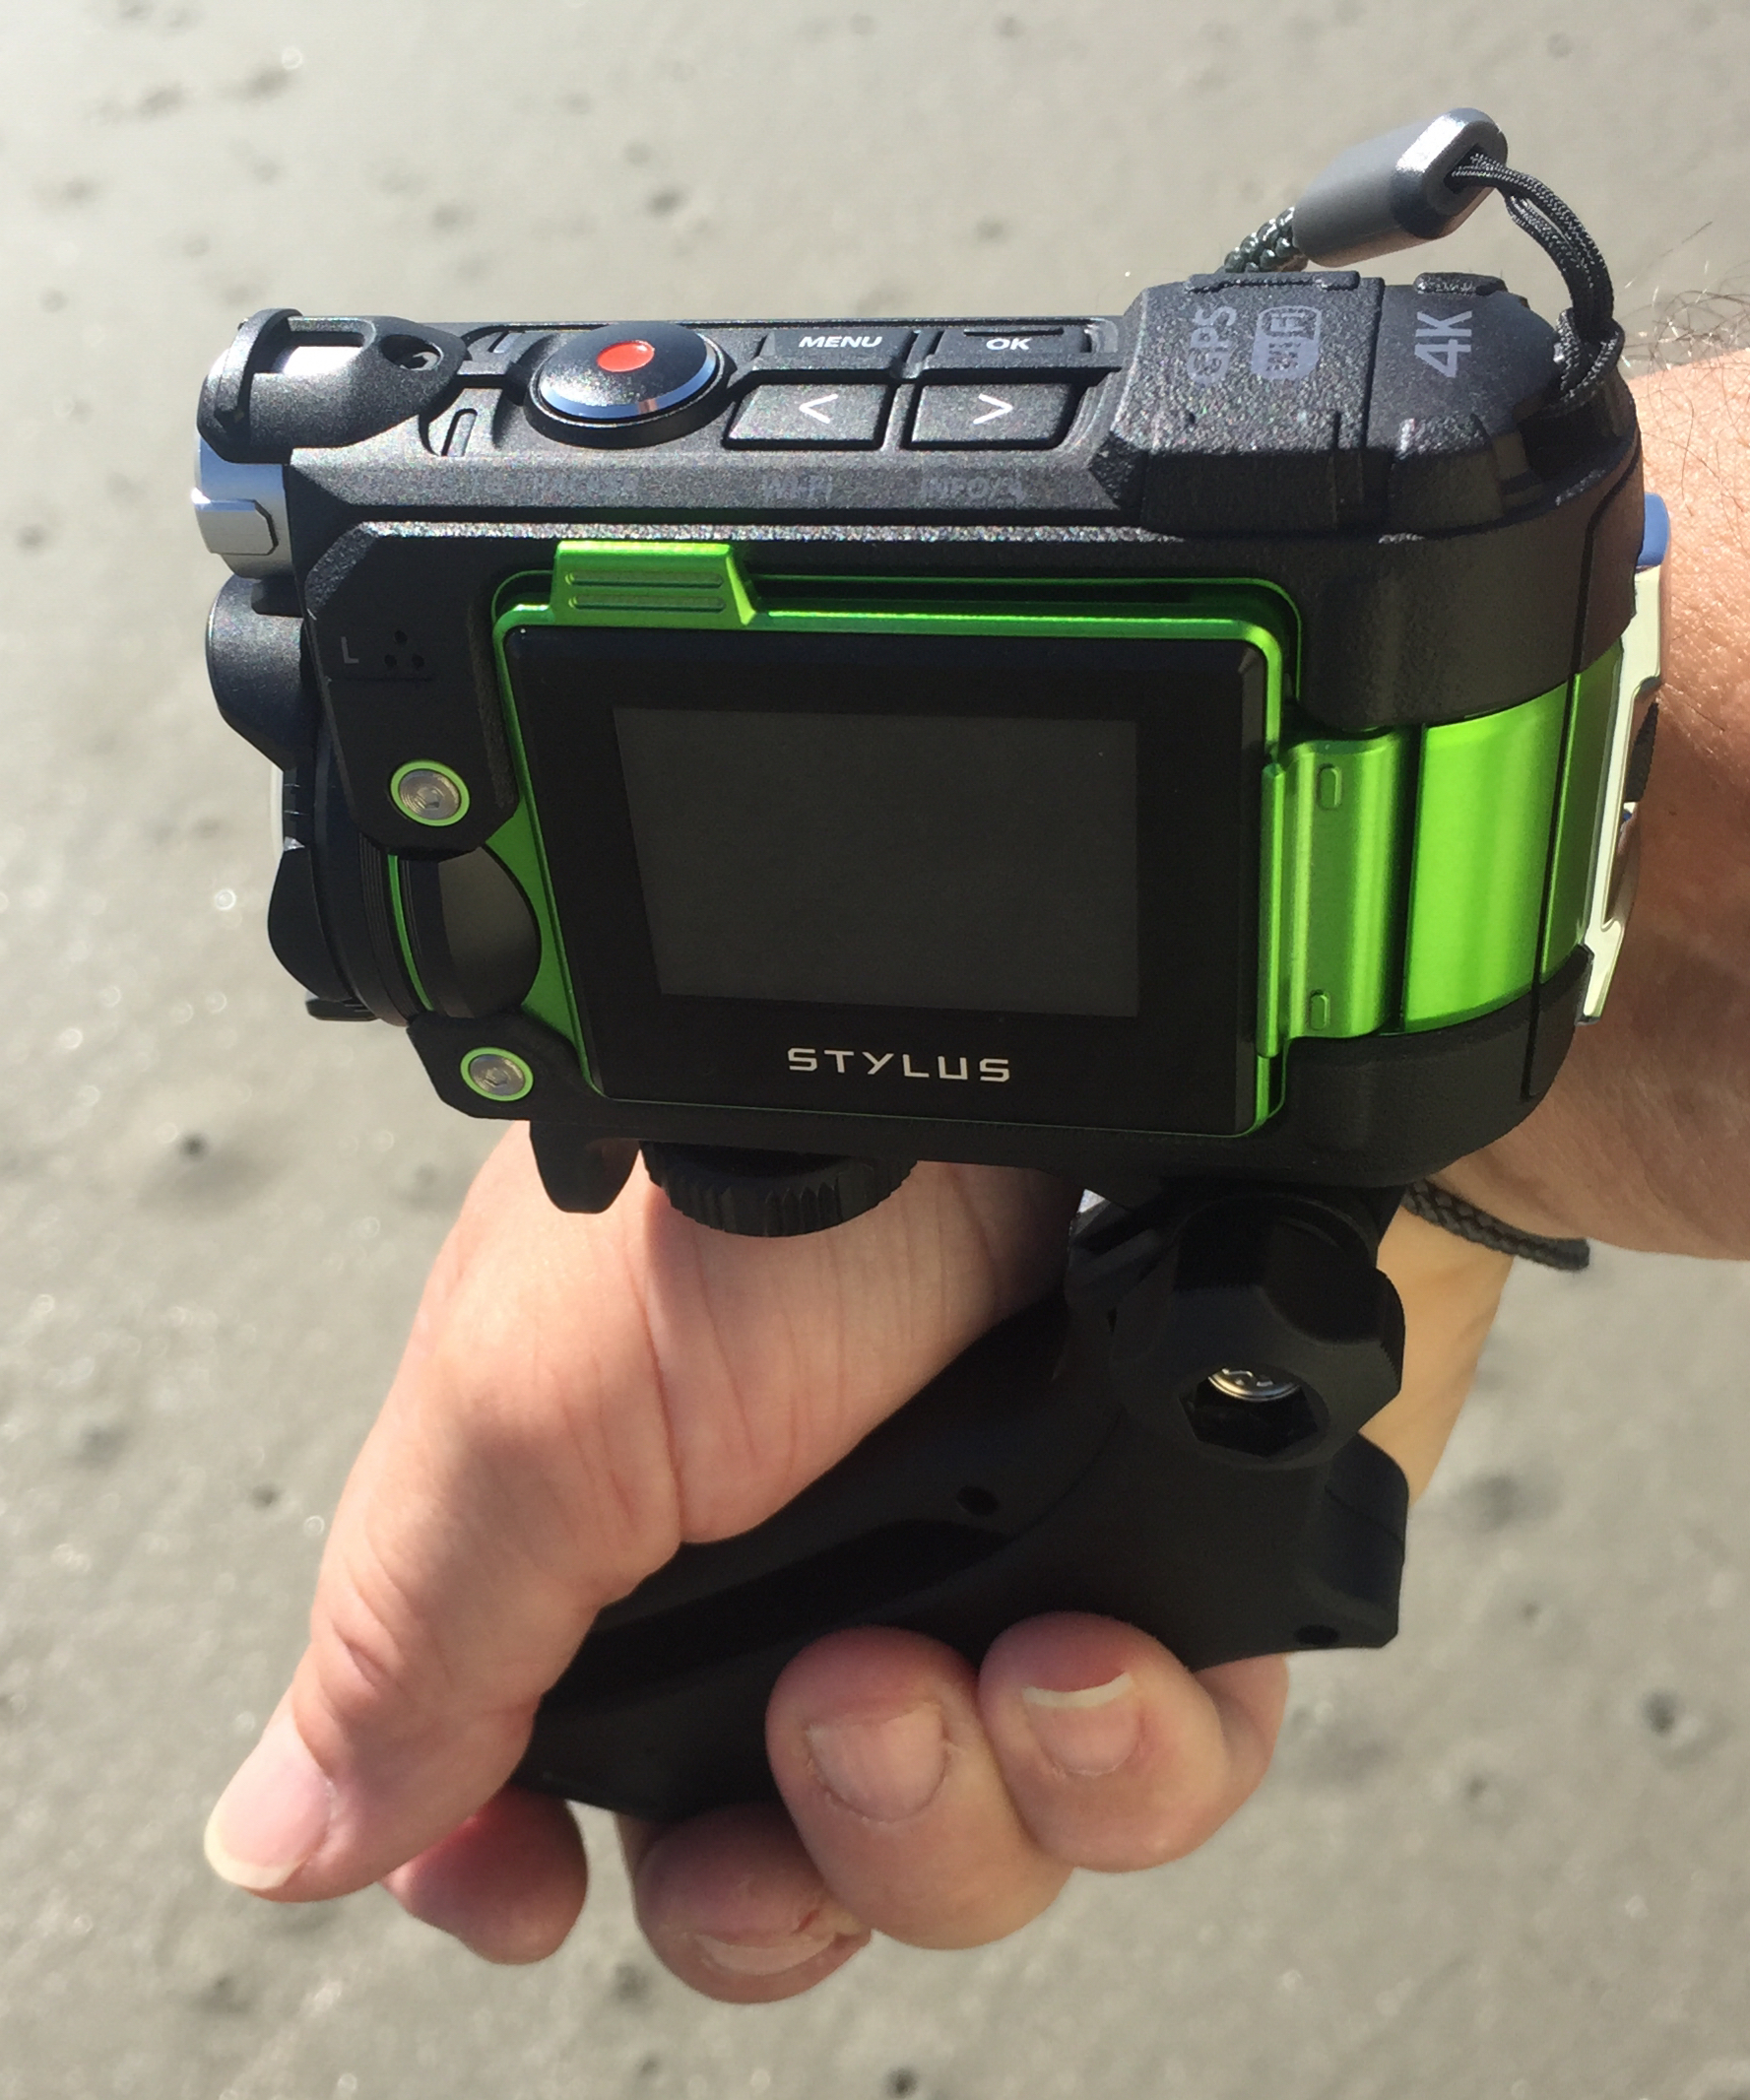 Putting grip on backwards allows you to hold the camera facing forward close to your side.